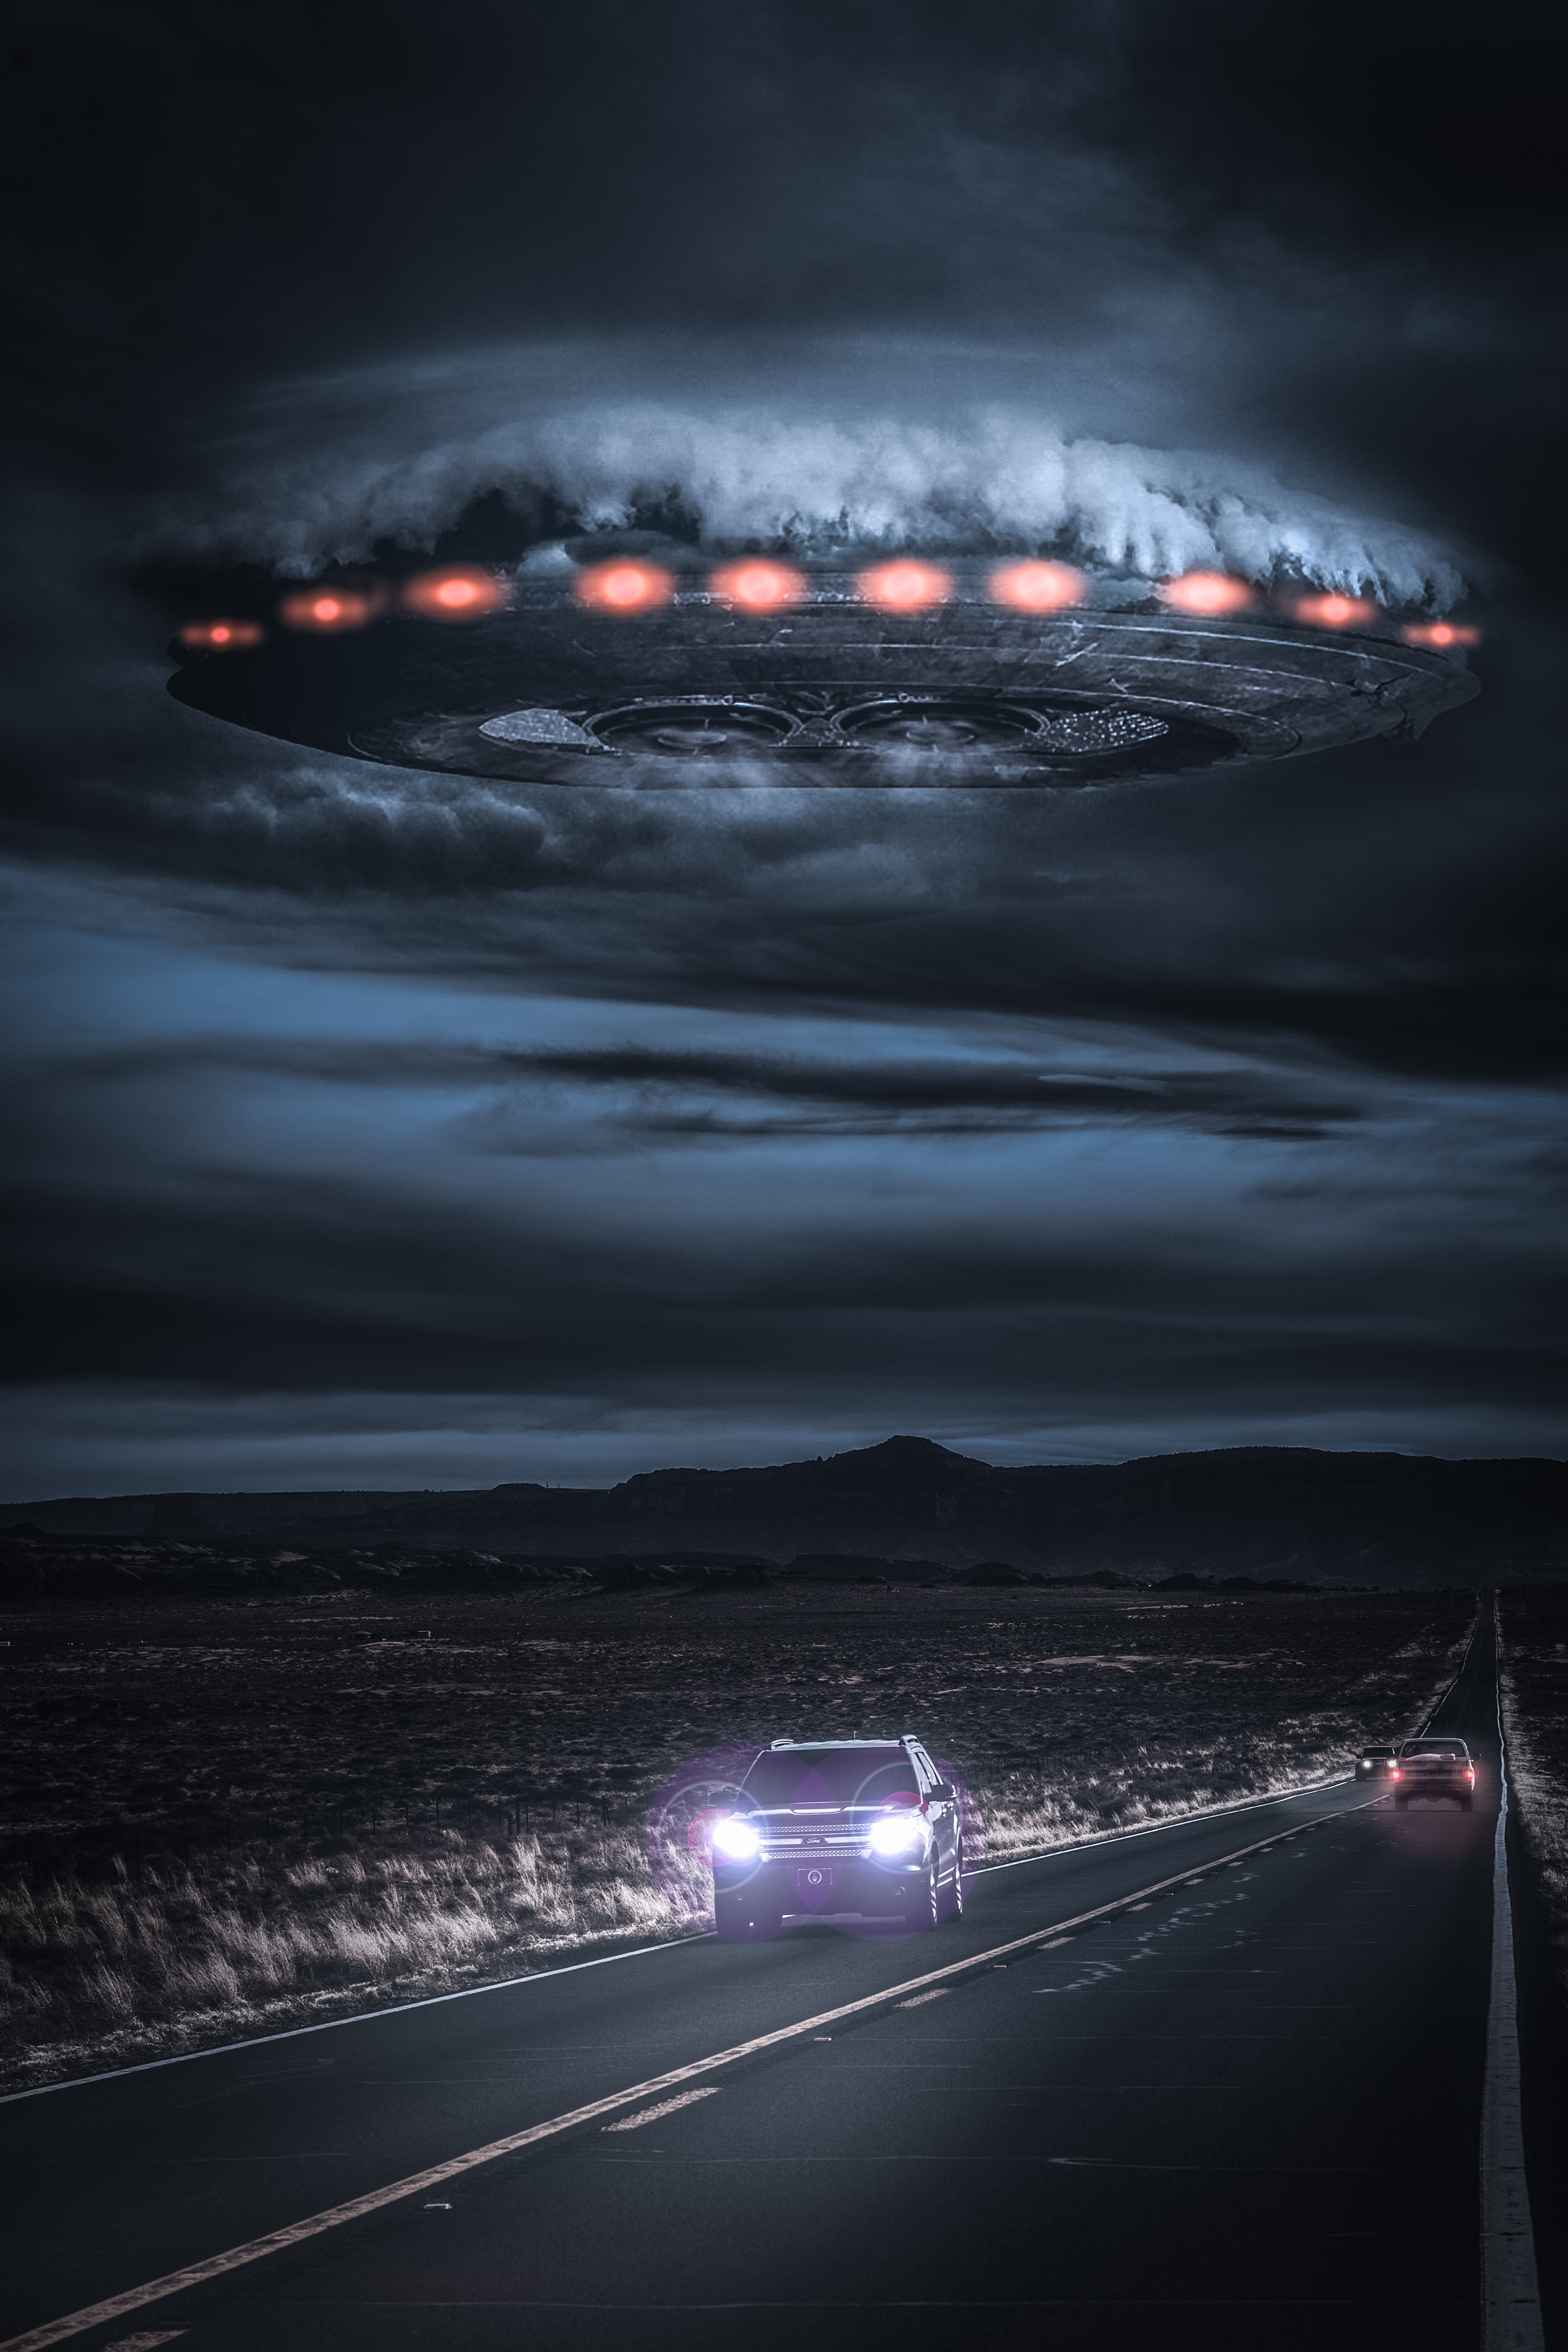 File:Alien spaceship breaking through the clouds over a ...